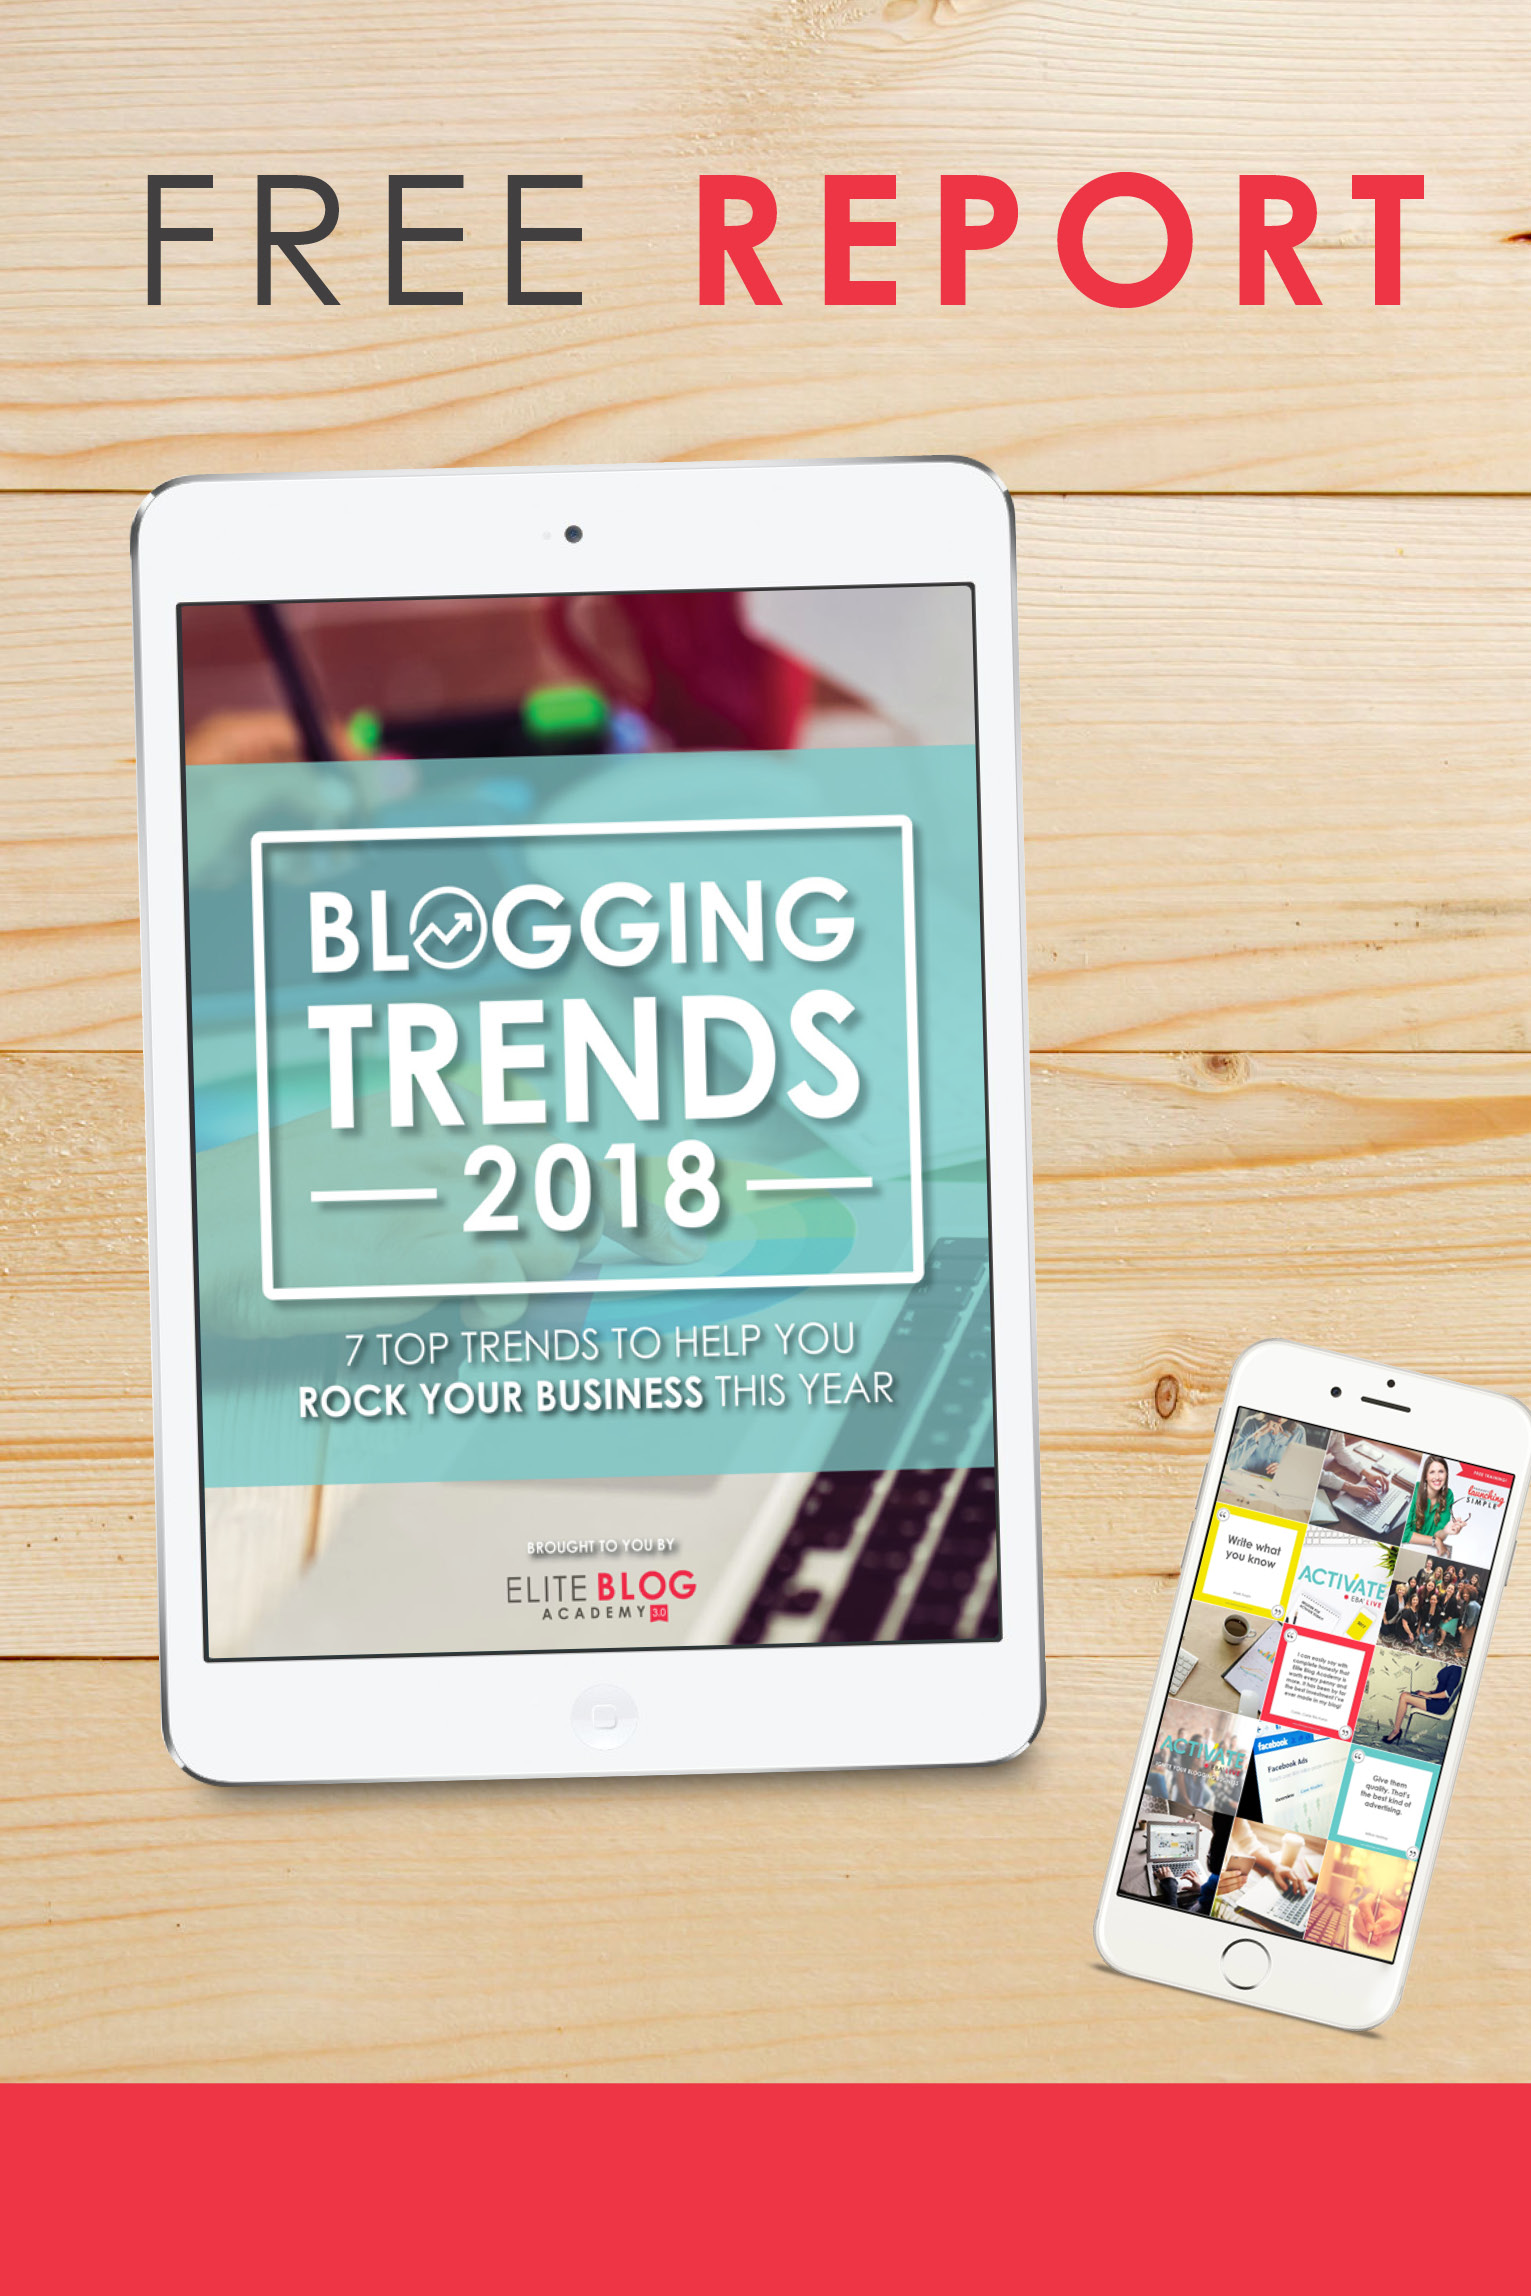 2018 Blogging Trends-Pinterest.jpg